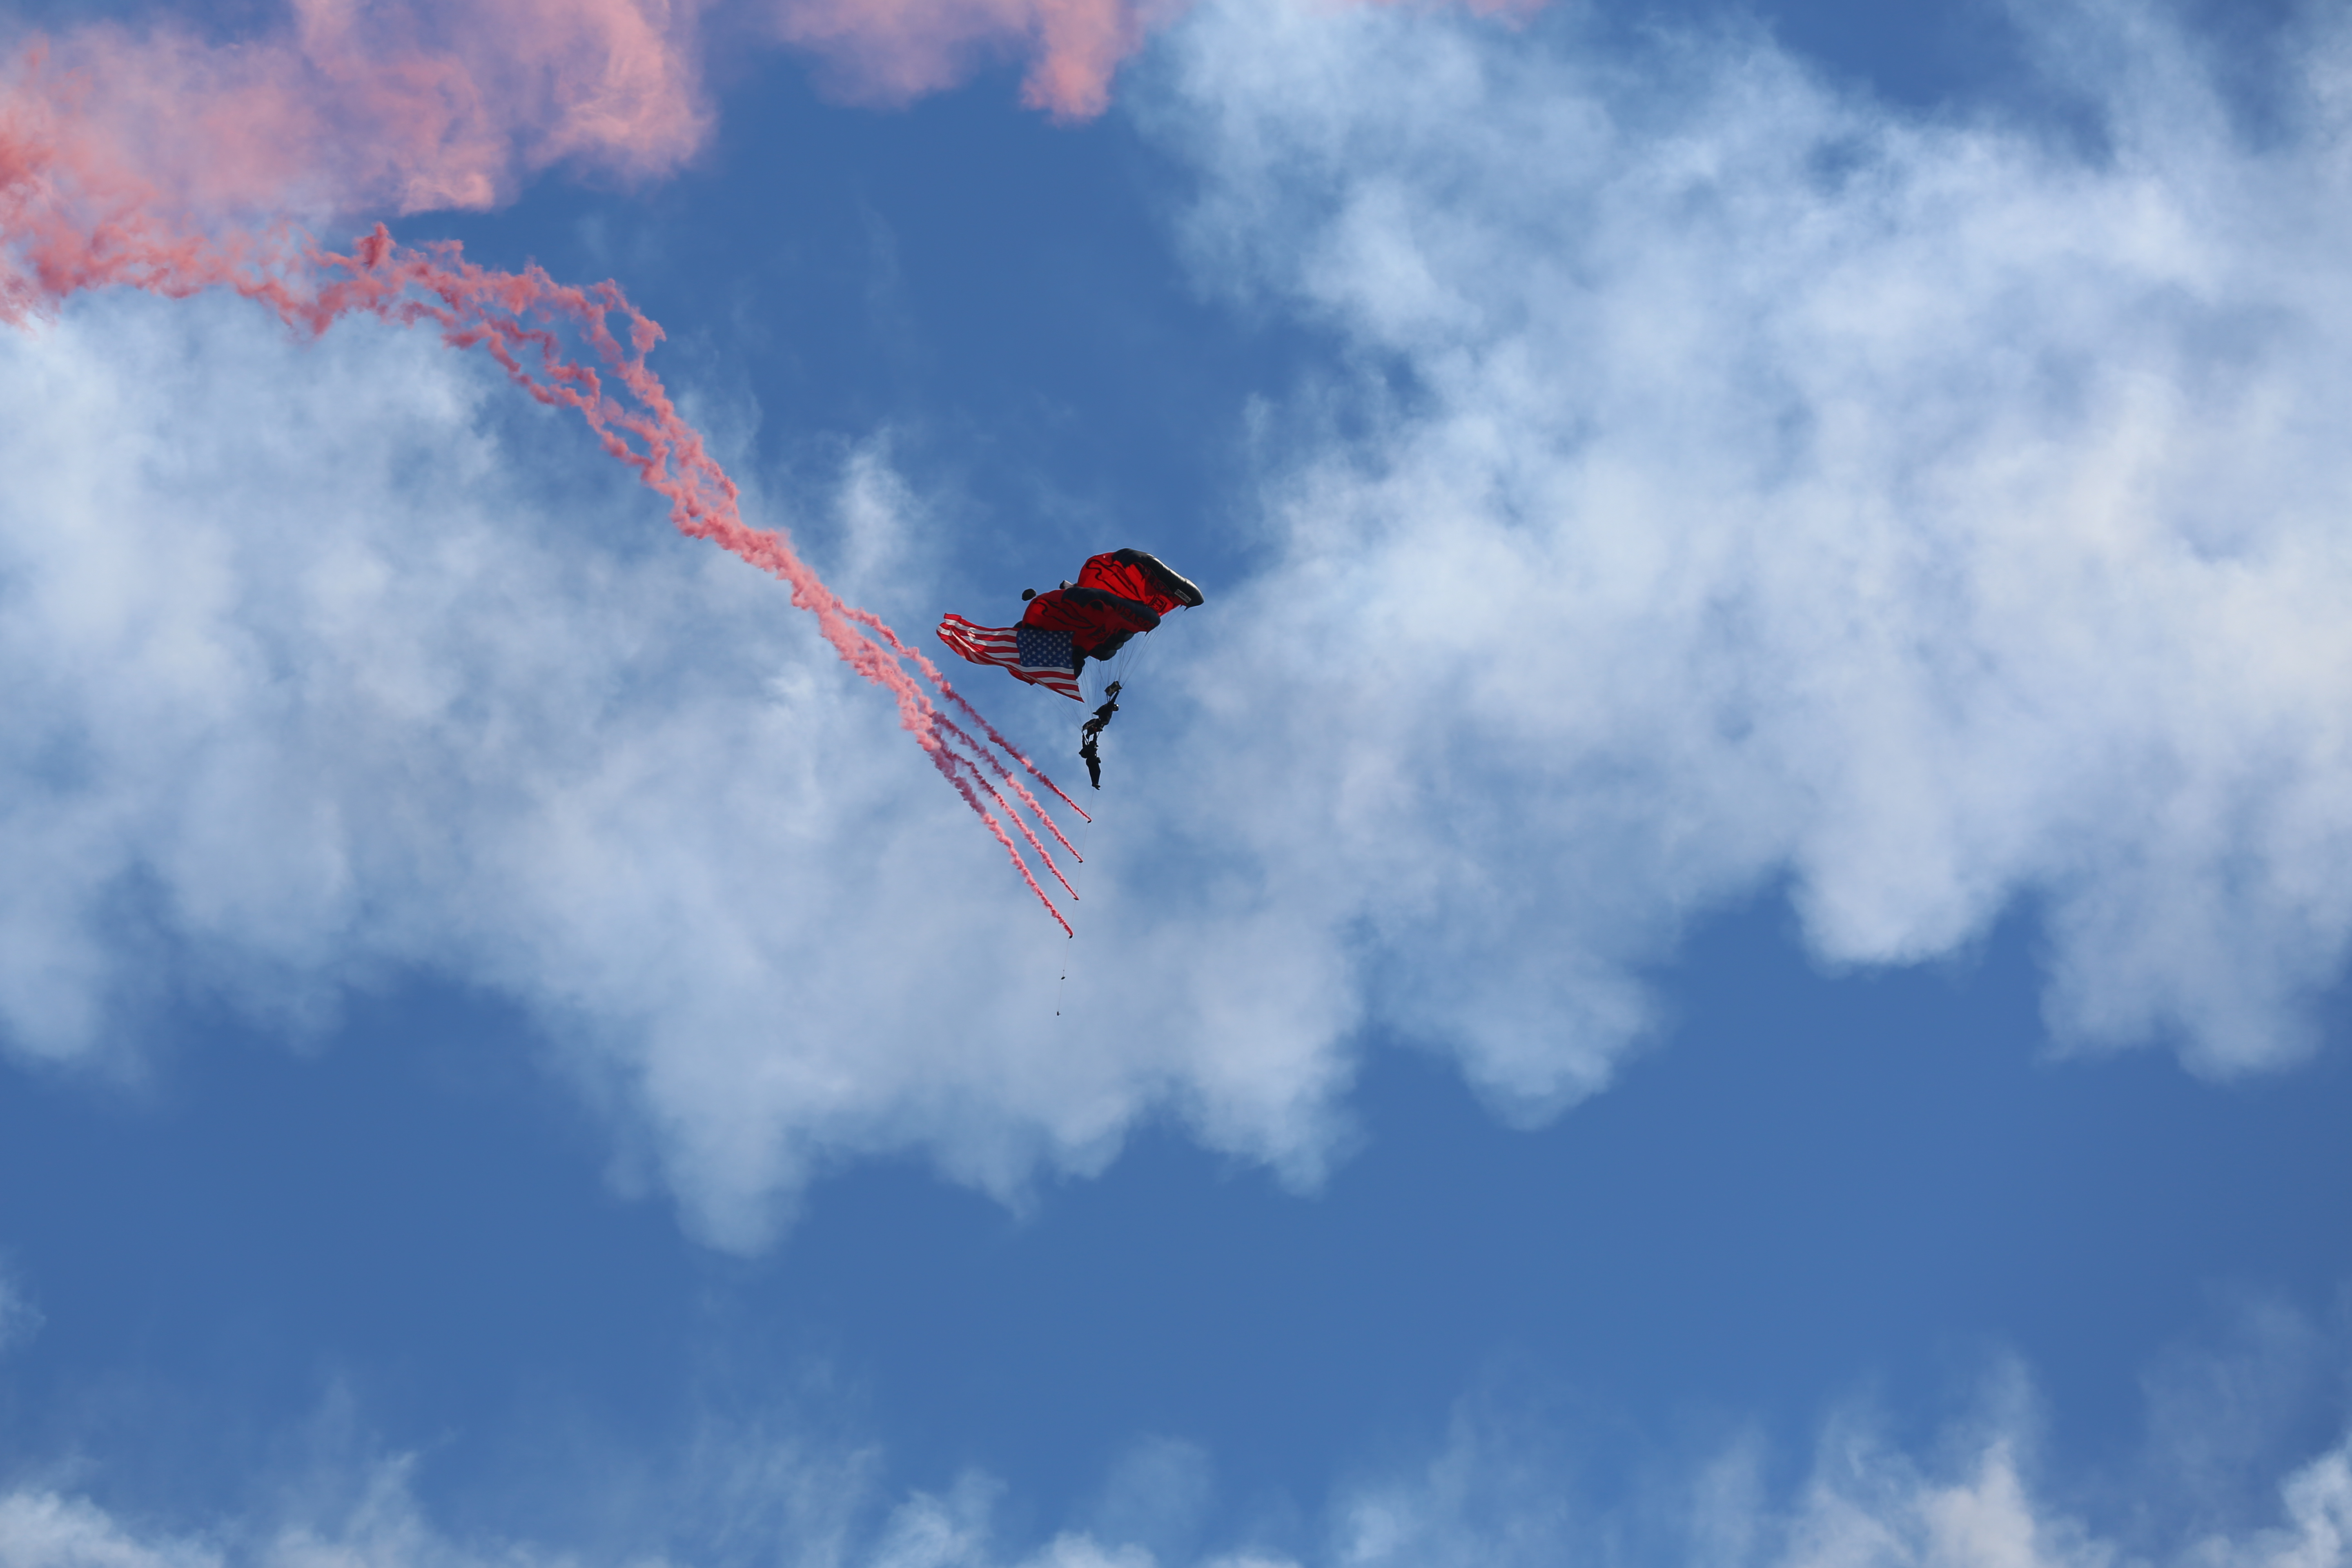 Black Daggers take to sky, jump over Cherry Point